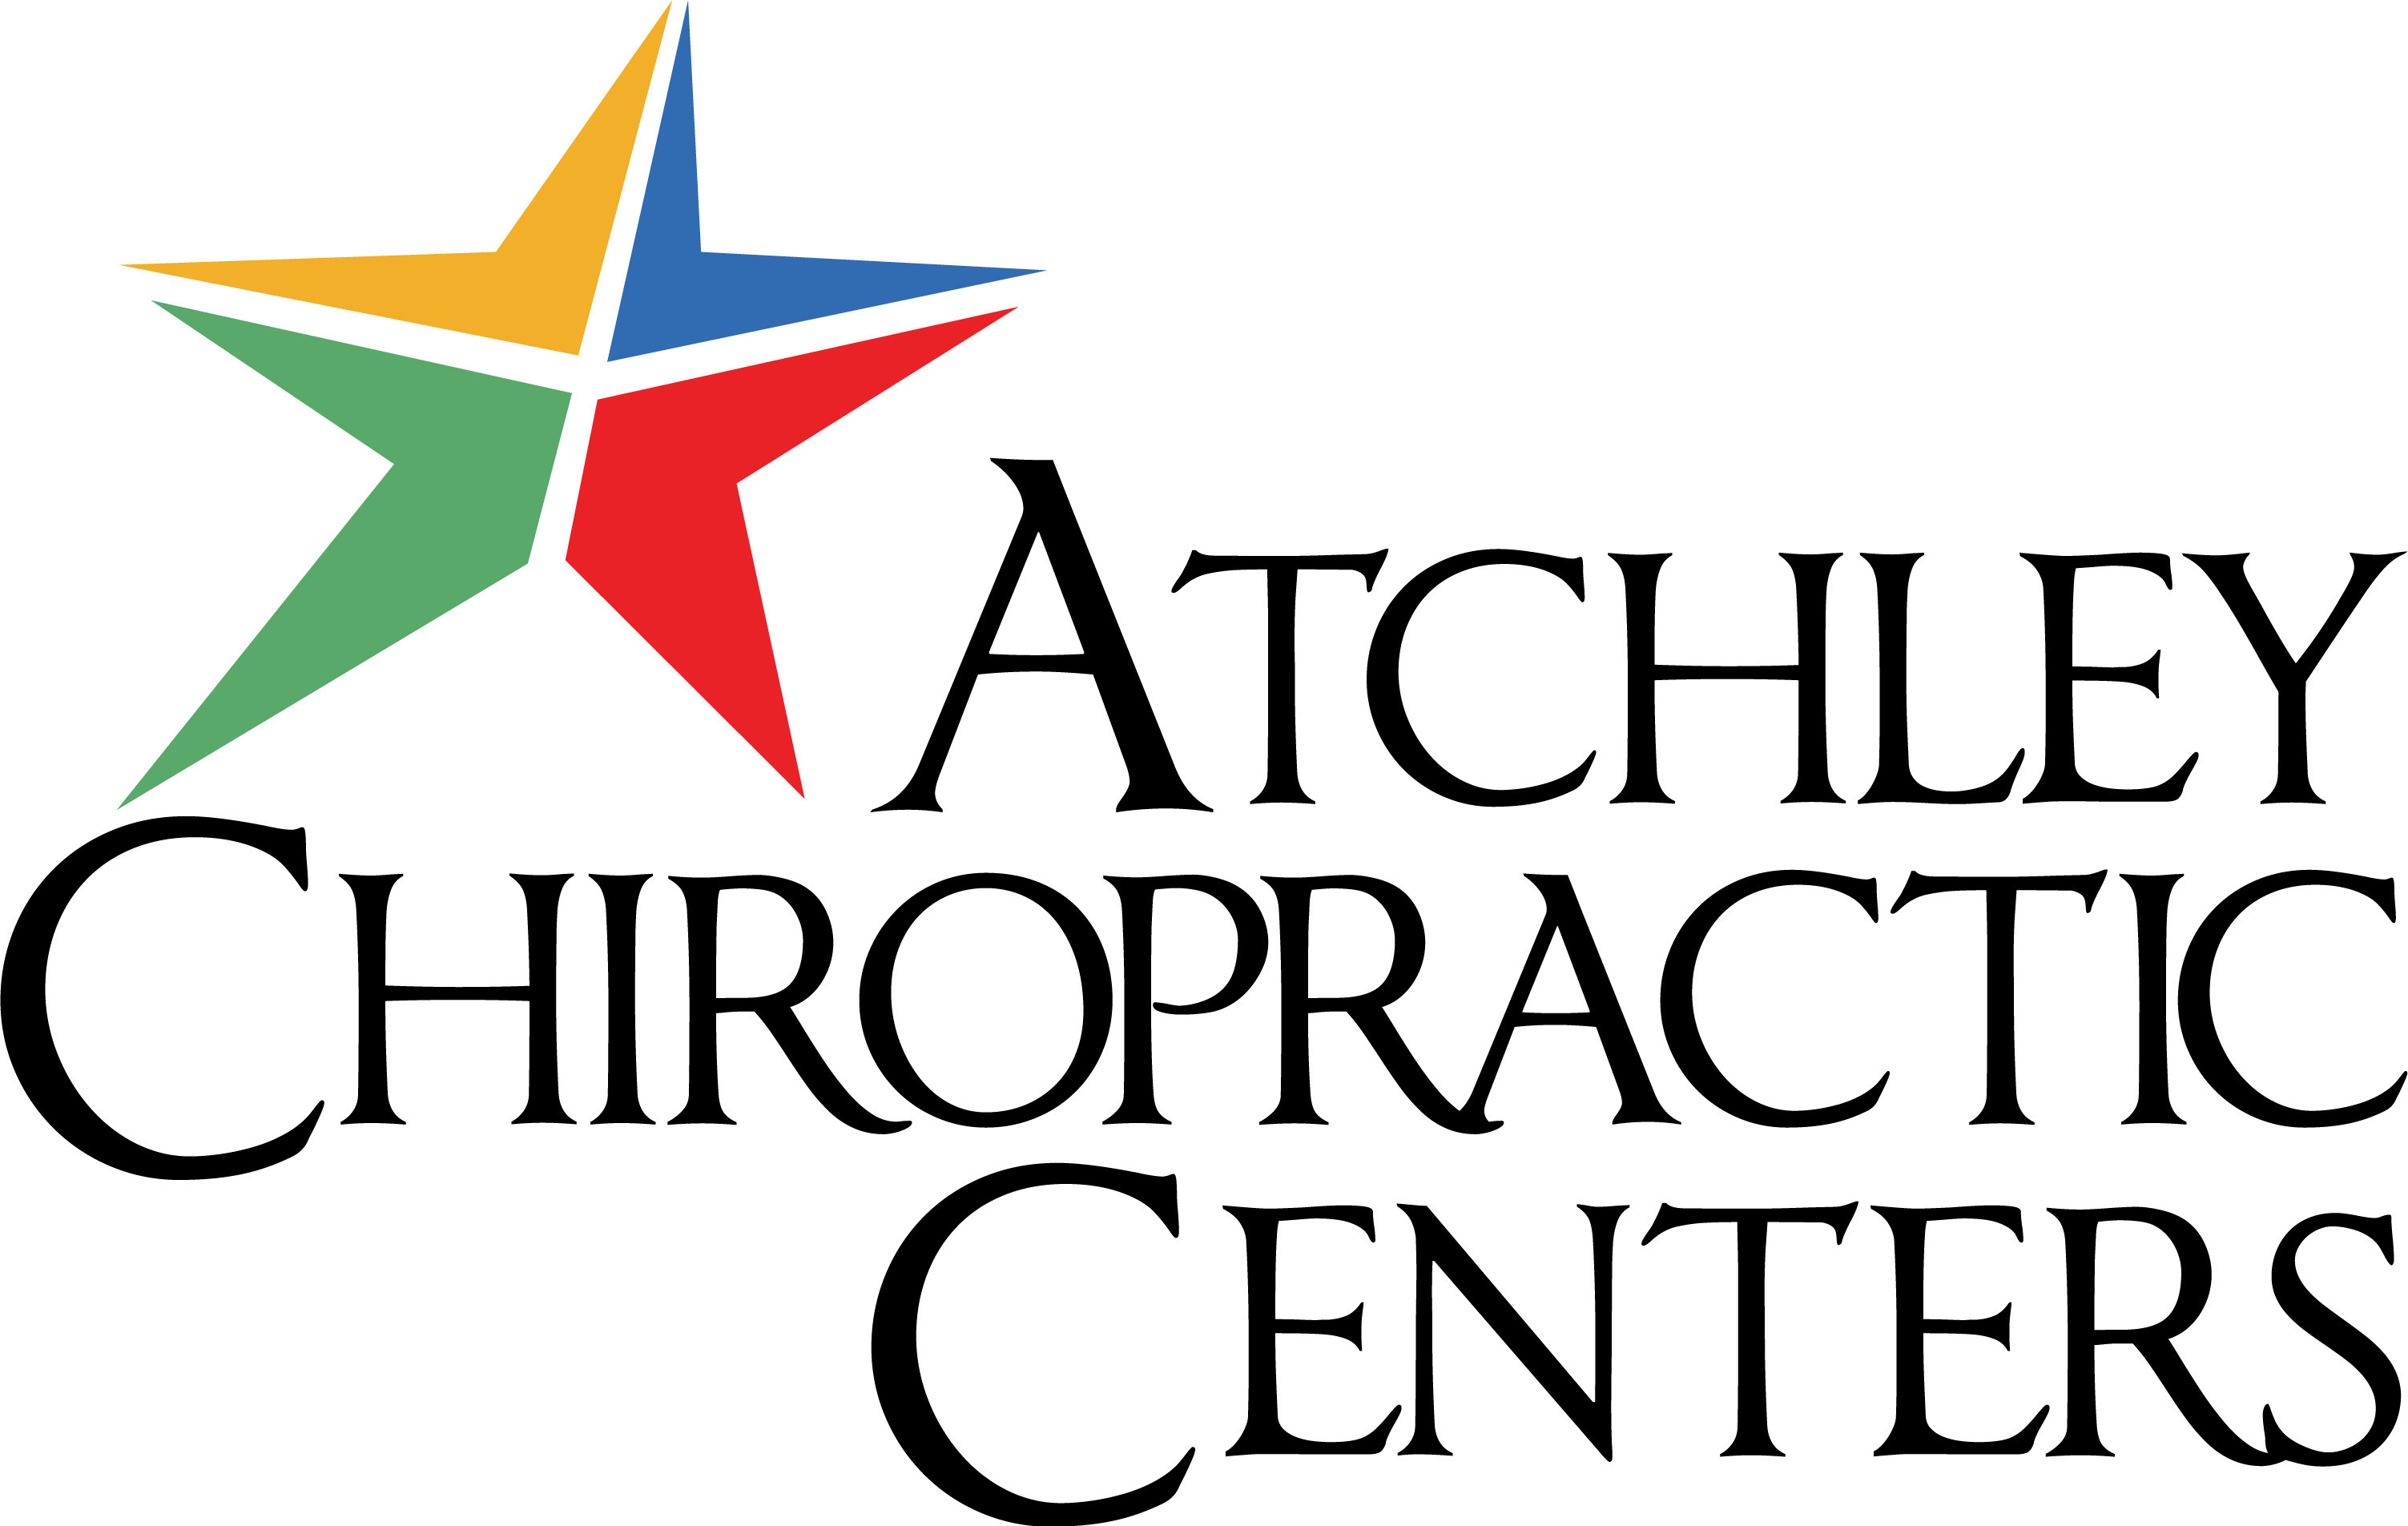 Atchley Chiropractic Centers